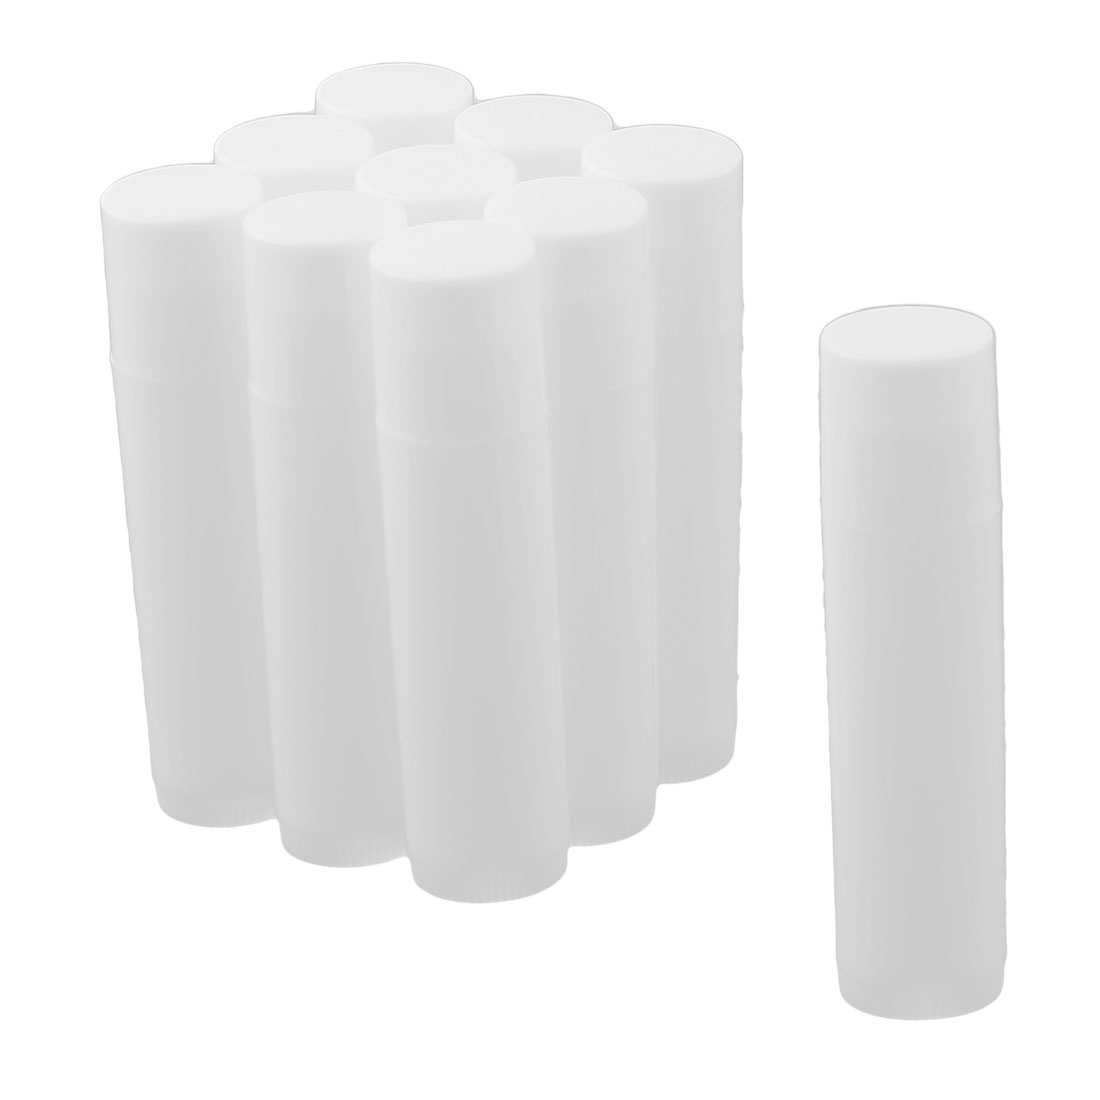 Lady Plastic Empty Lip Balm Tube Lipstick Chapstick Container Cosmetic Holder White 10 Pcs